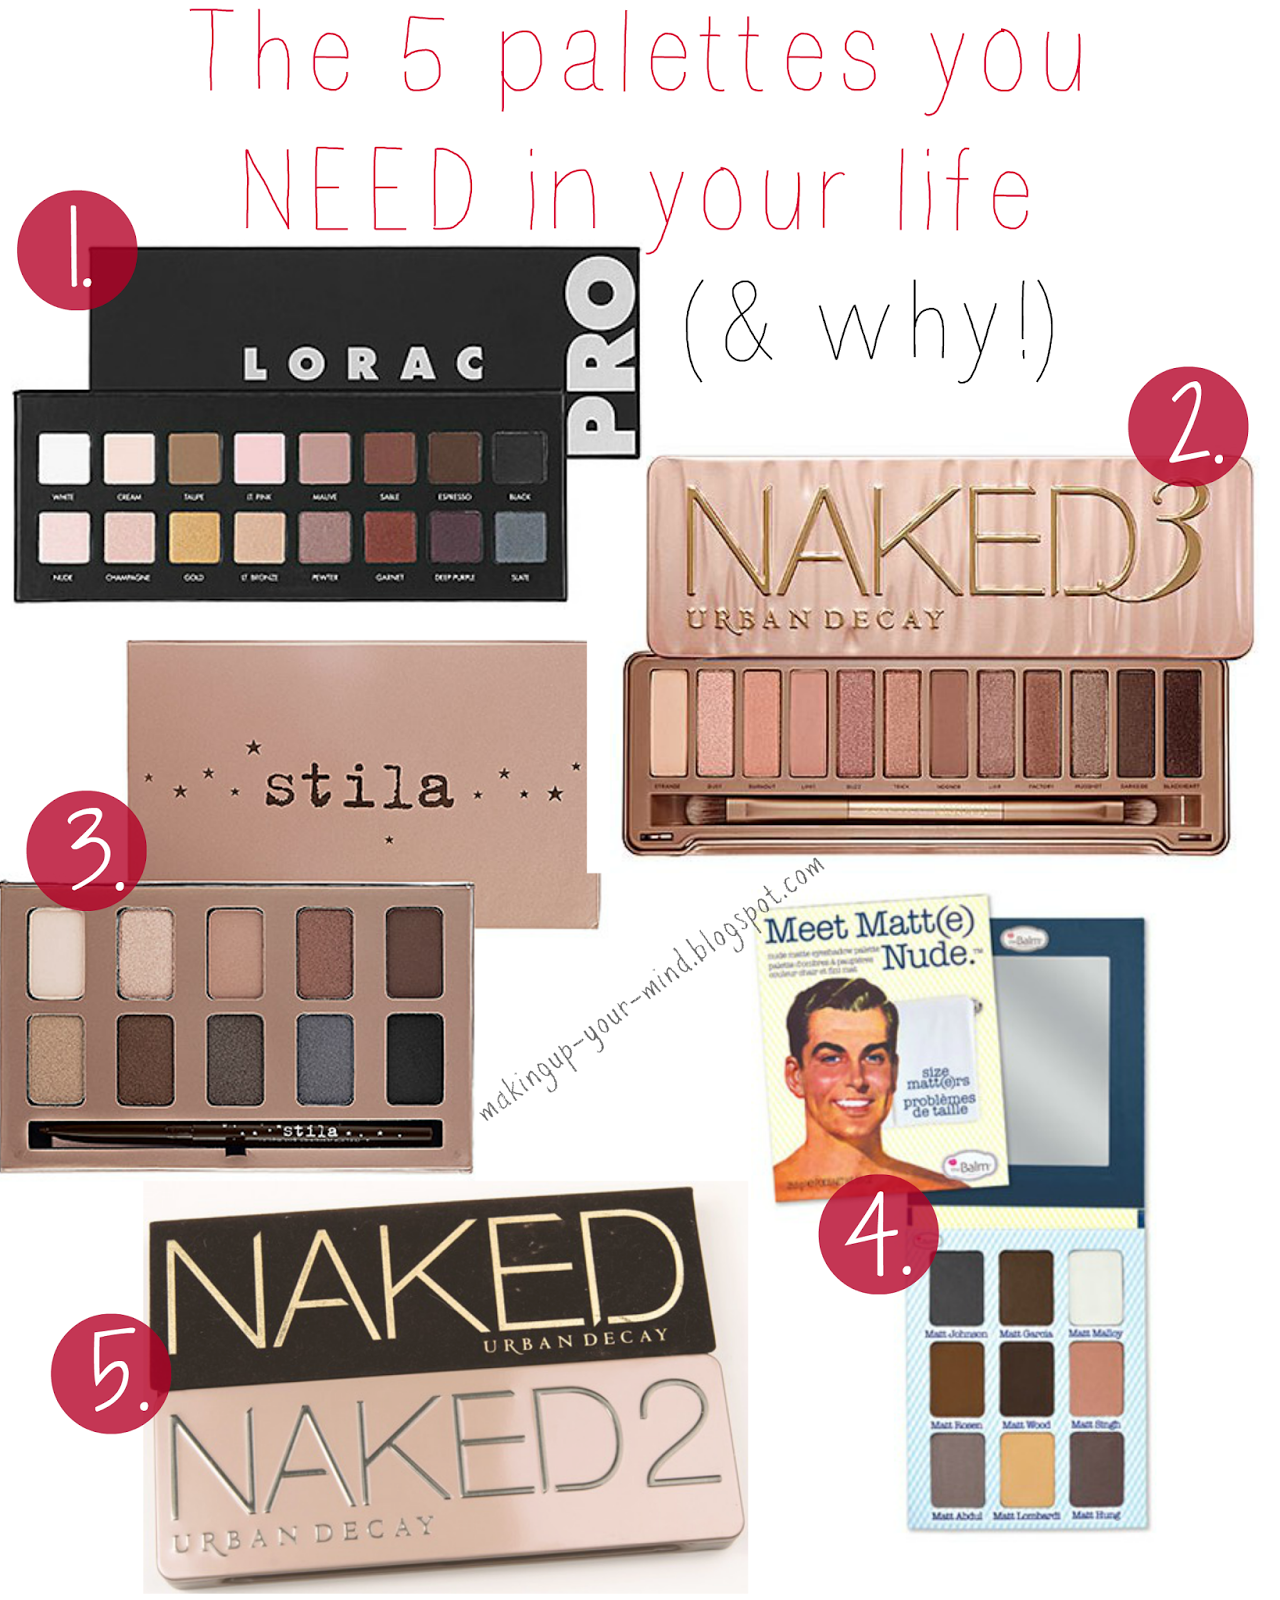 The 5 palettes you NEED in your life & why!